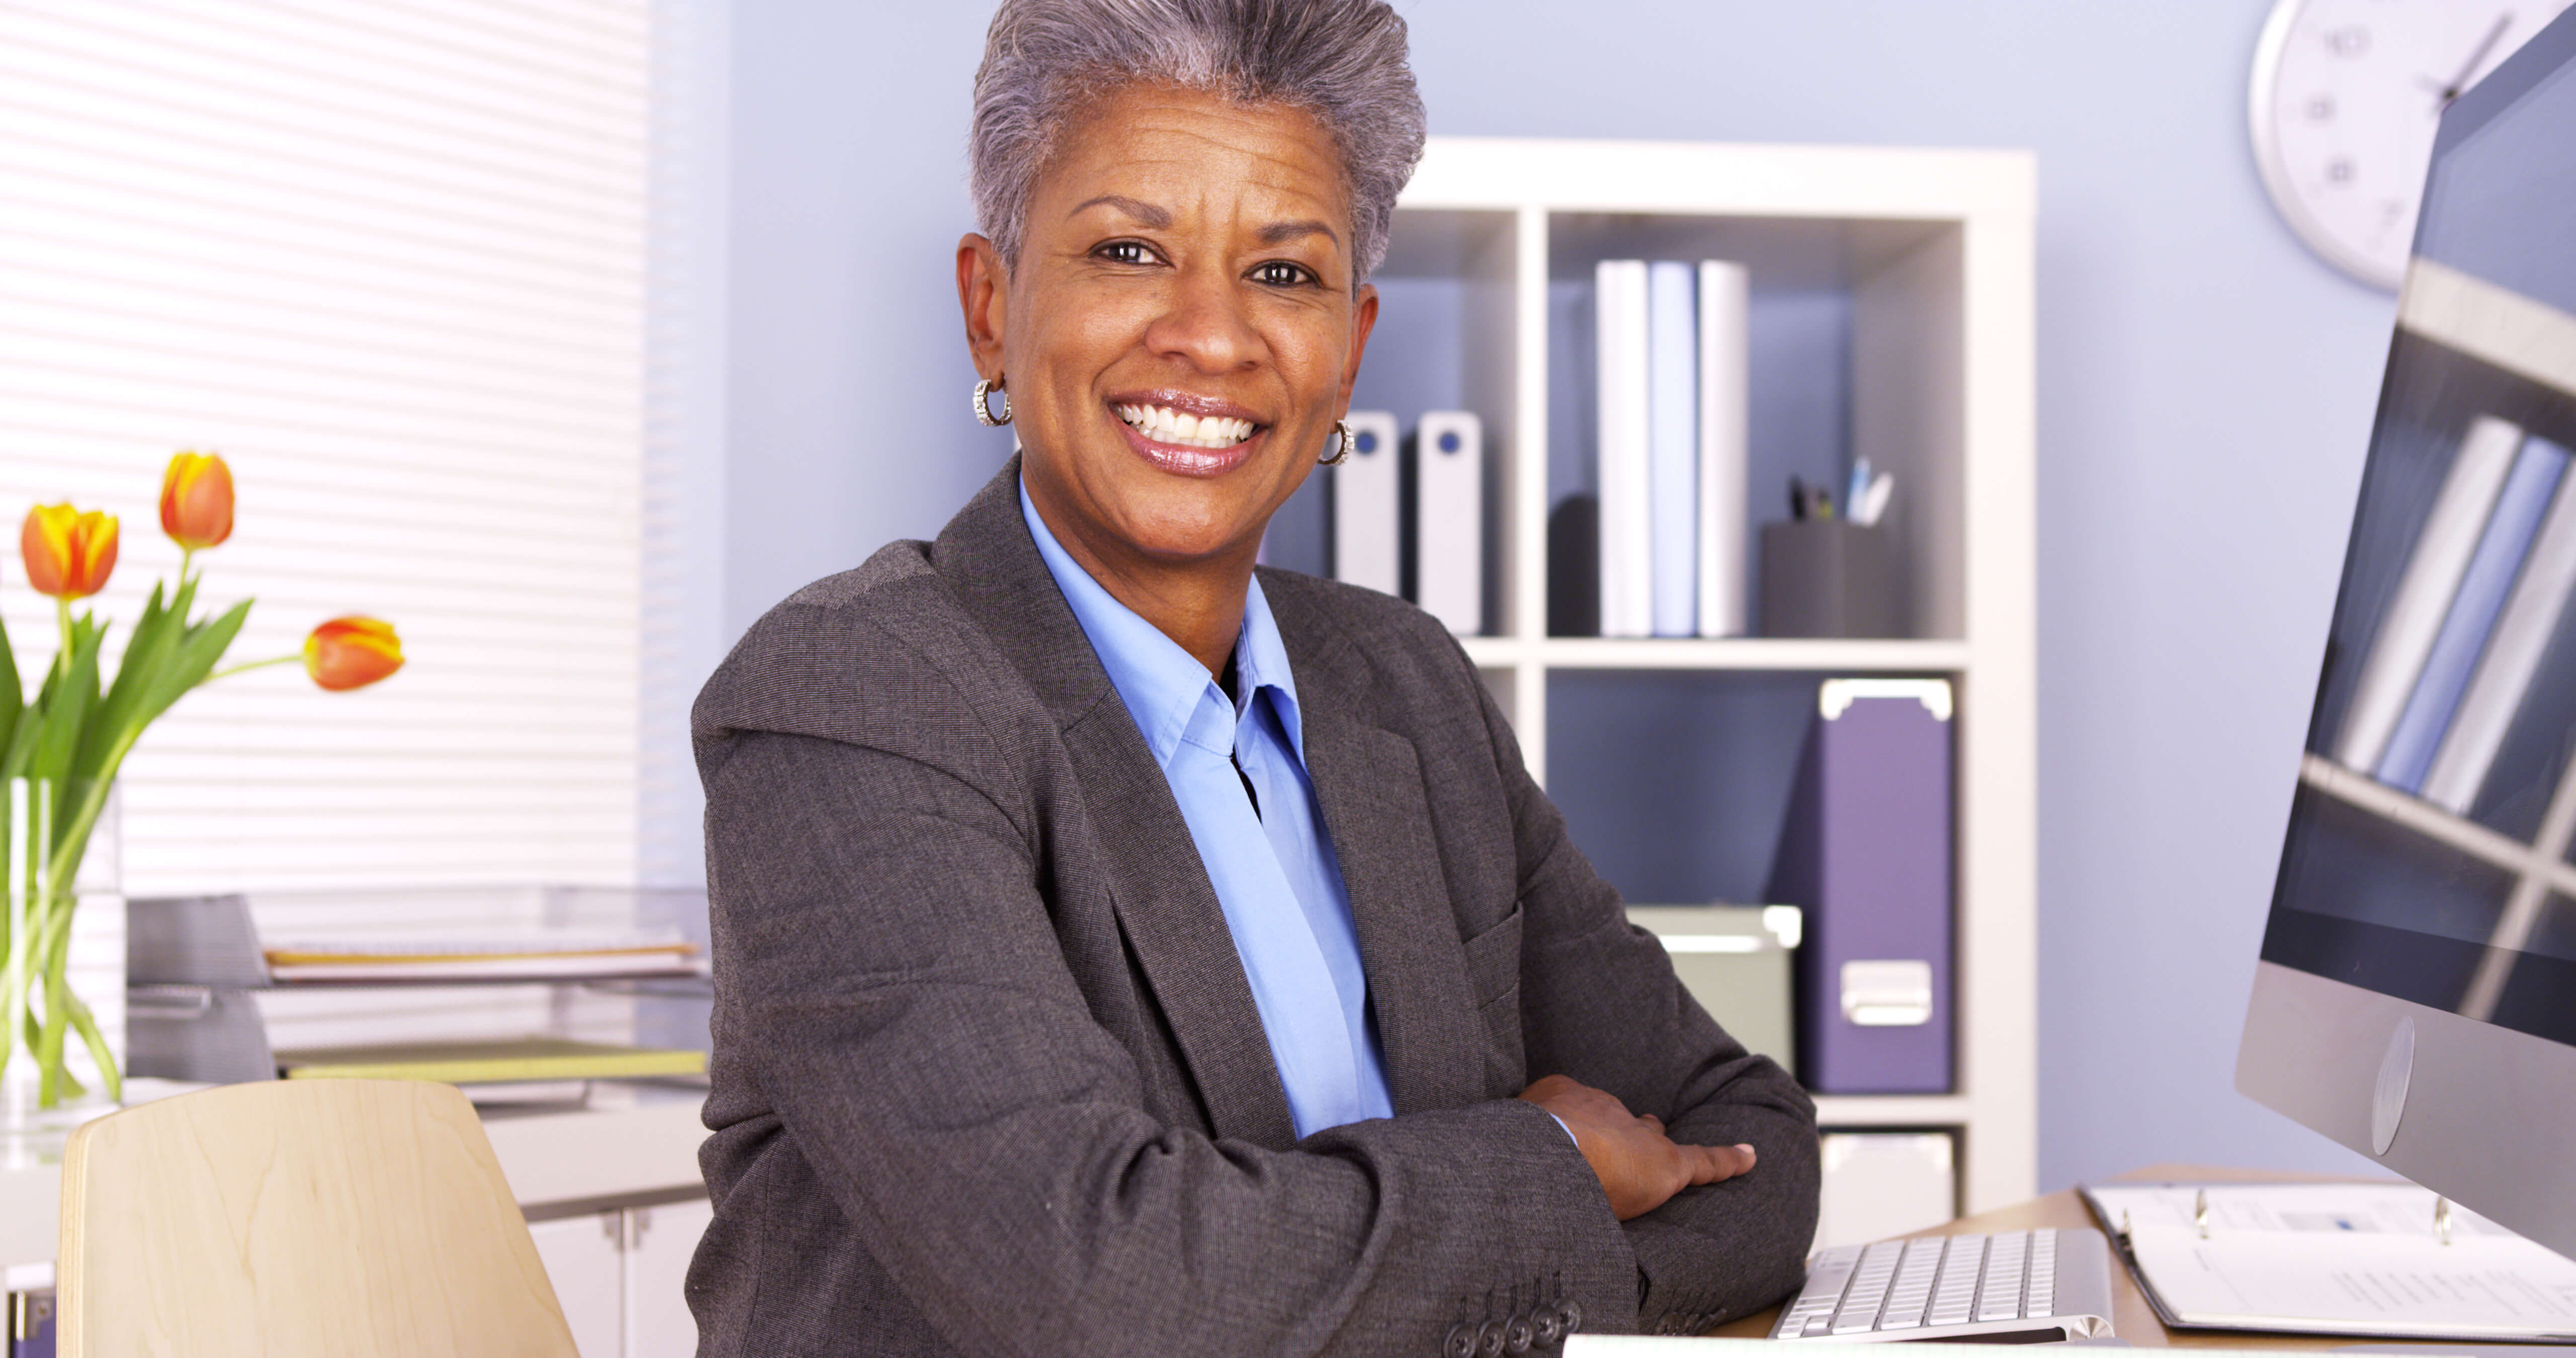 Certified Resume Writers   About Us   Our Value to You